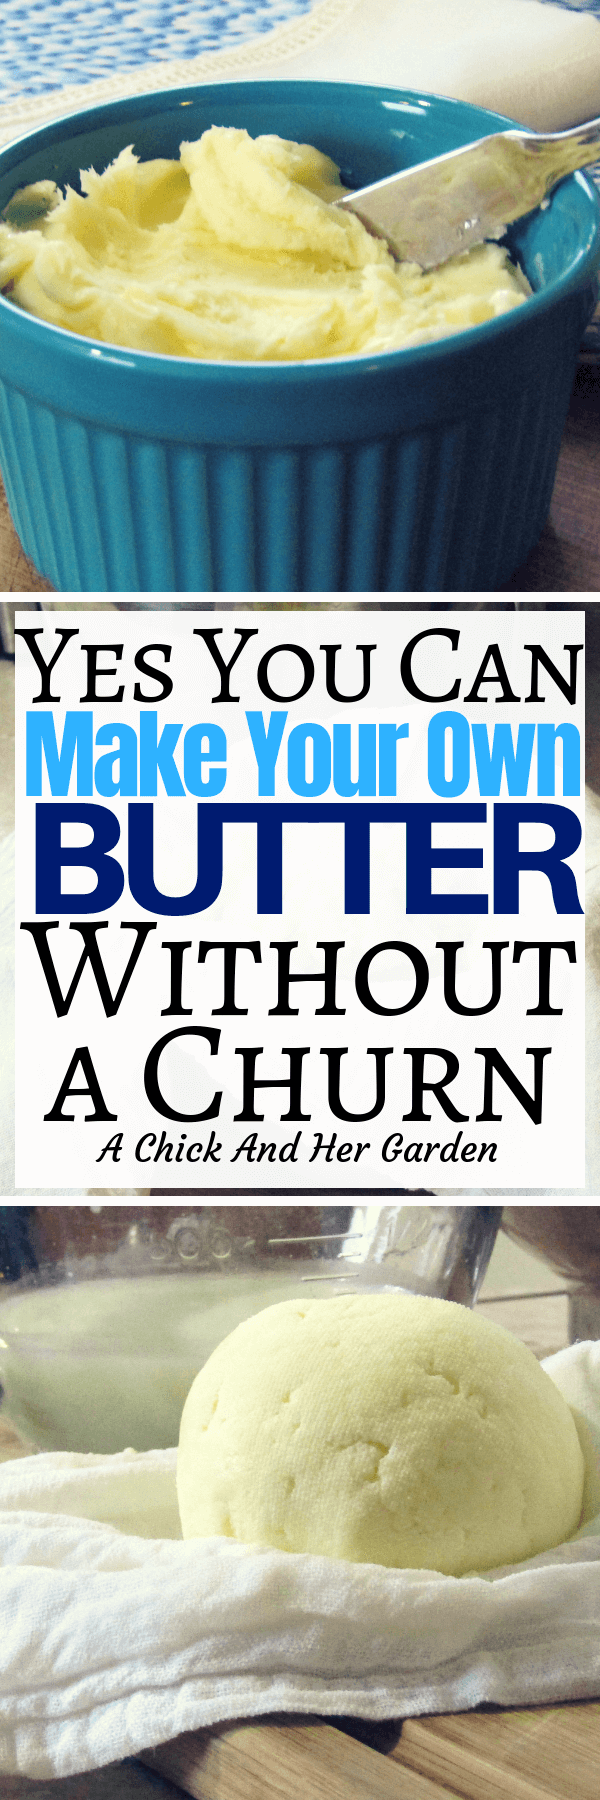 Making your own homemade butter should be one of the first things you learn when trying to eliminate processed foods from your diet! It's the easiest to learn! You don't even need a churn! #homemadebutter #cleaneating #fromscratchrecipes #achickandhergarden